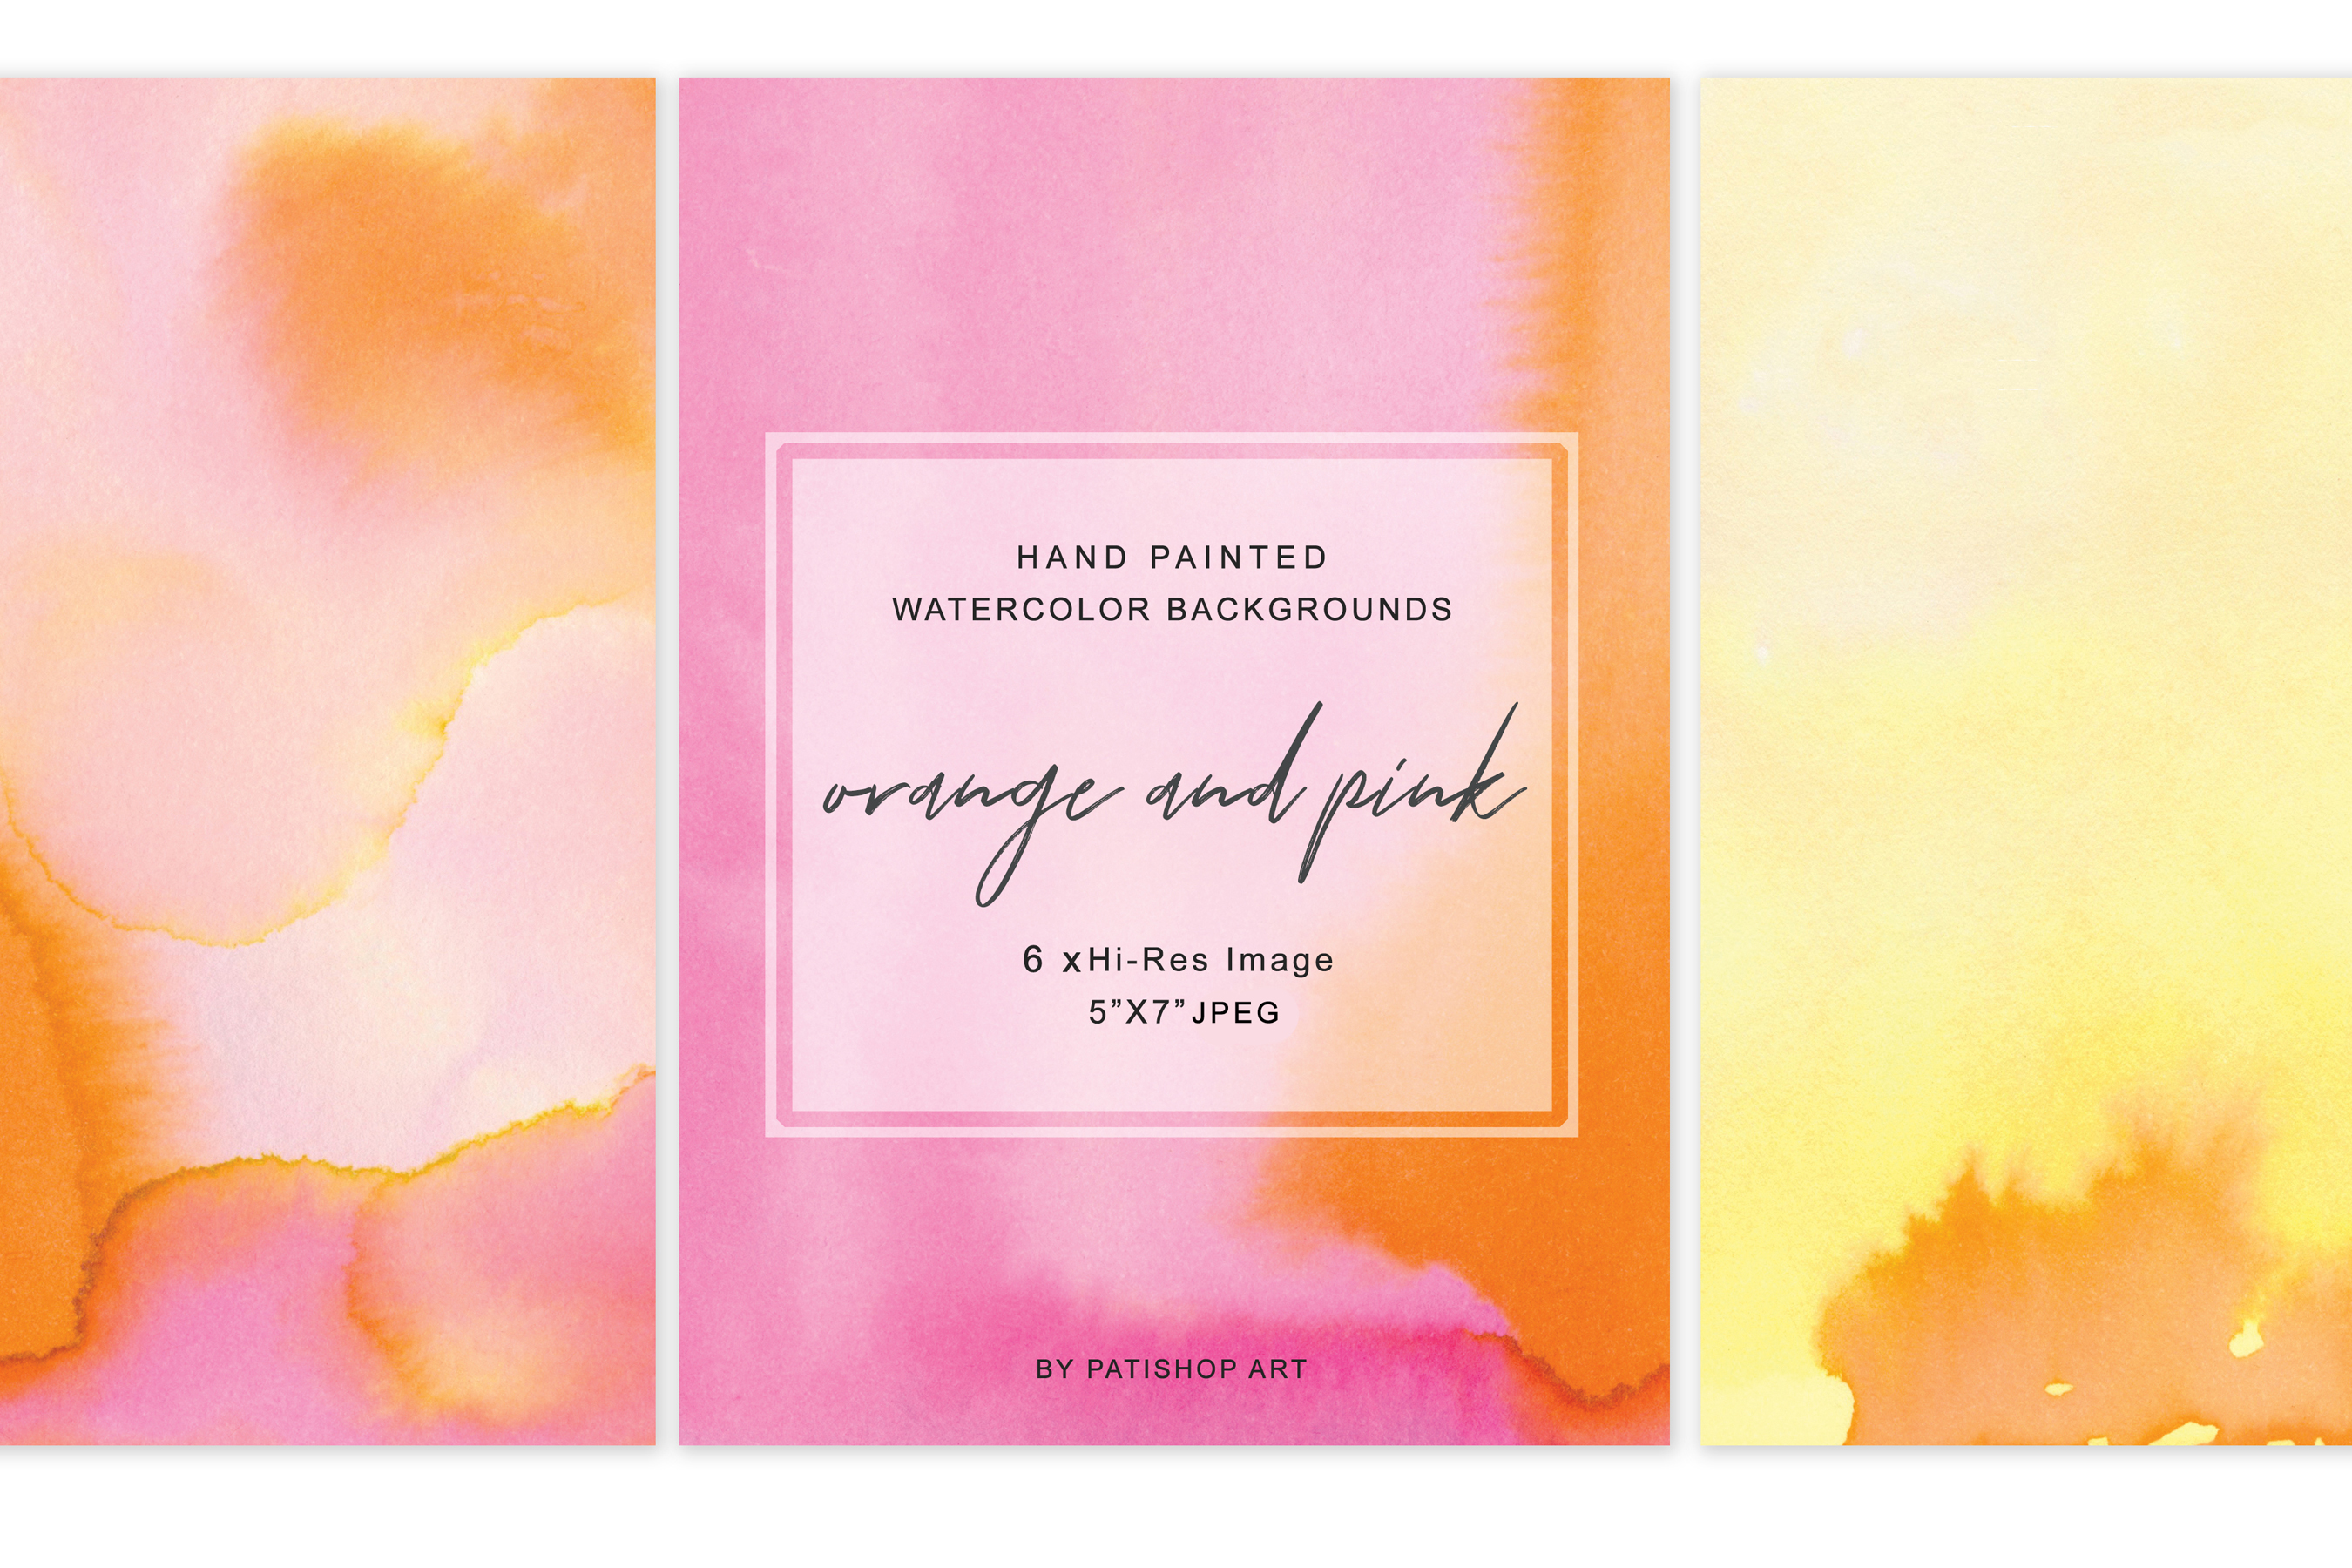 Hand Painted Watercolor Background Orange & Pink 5x7 example image 4